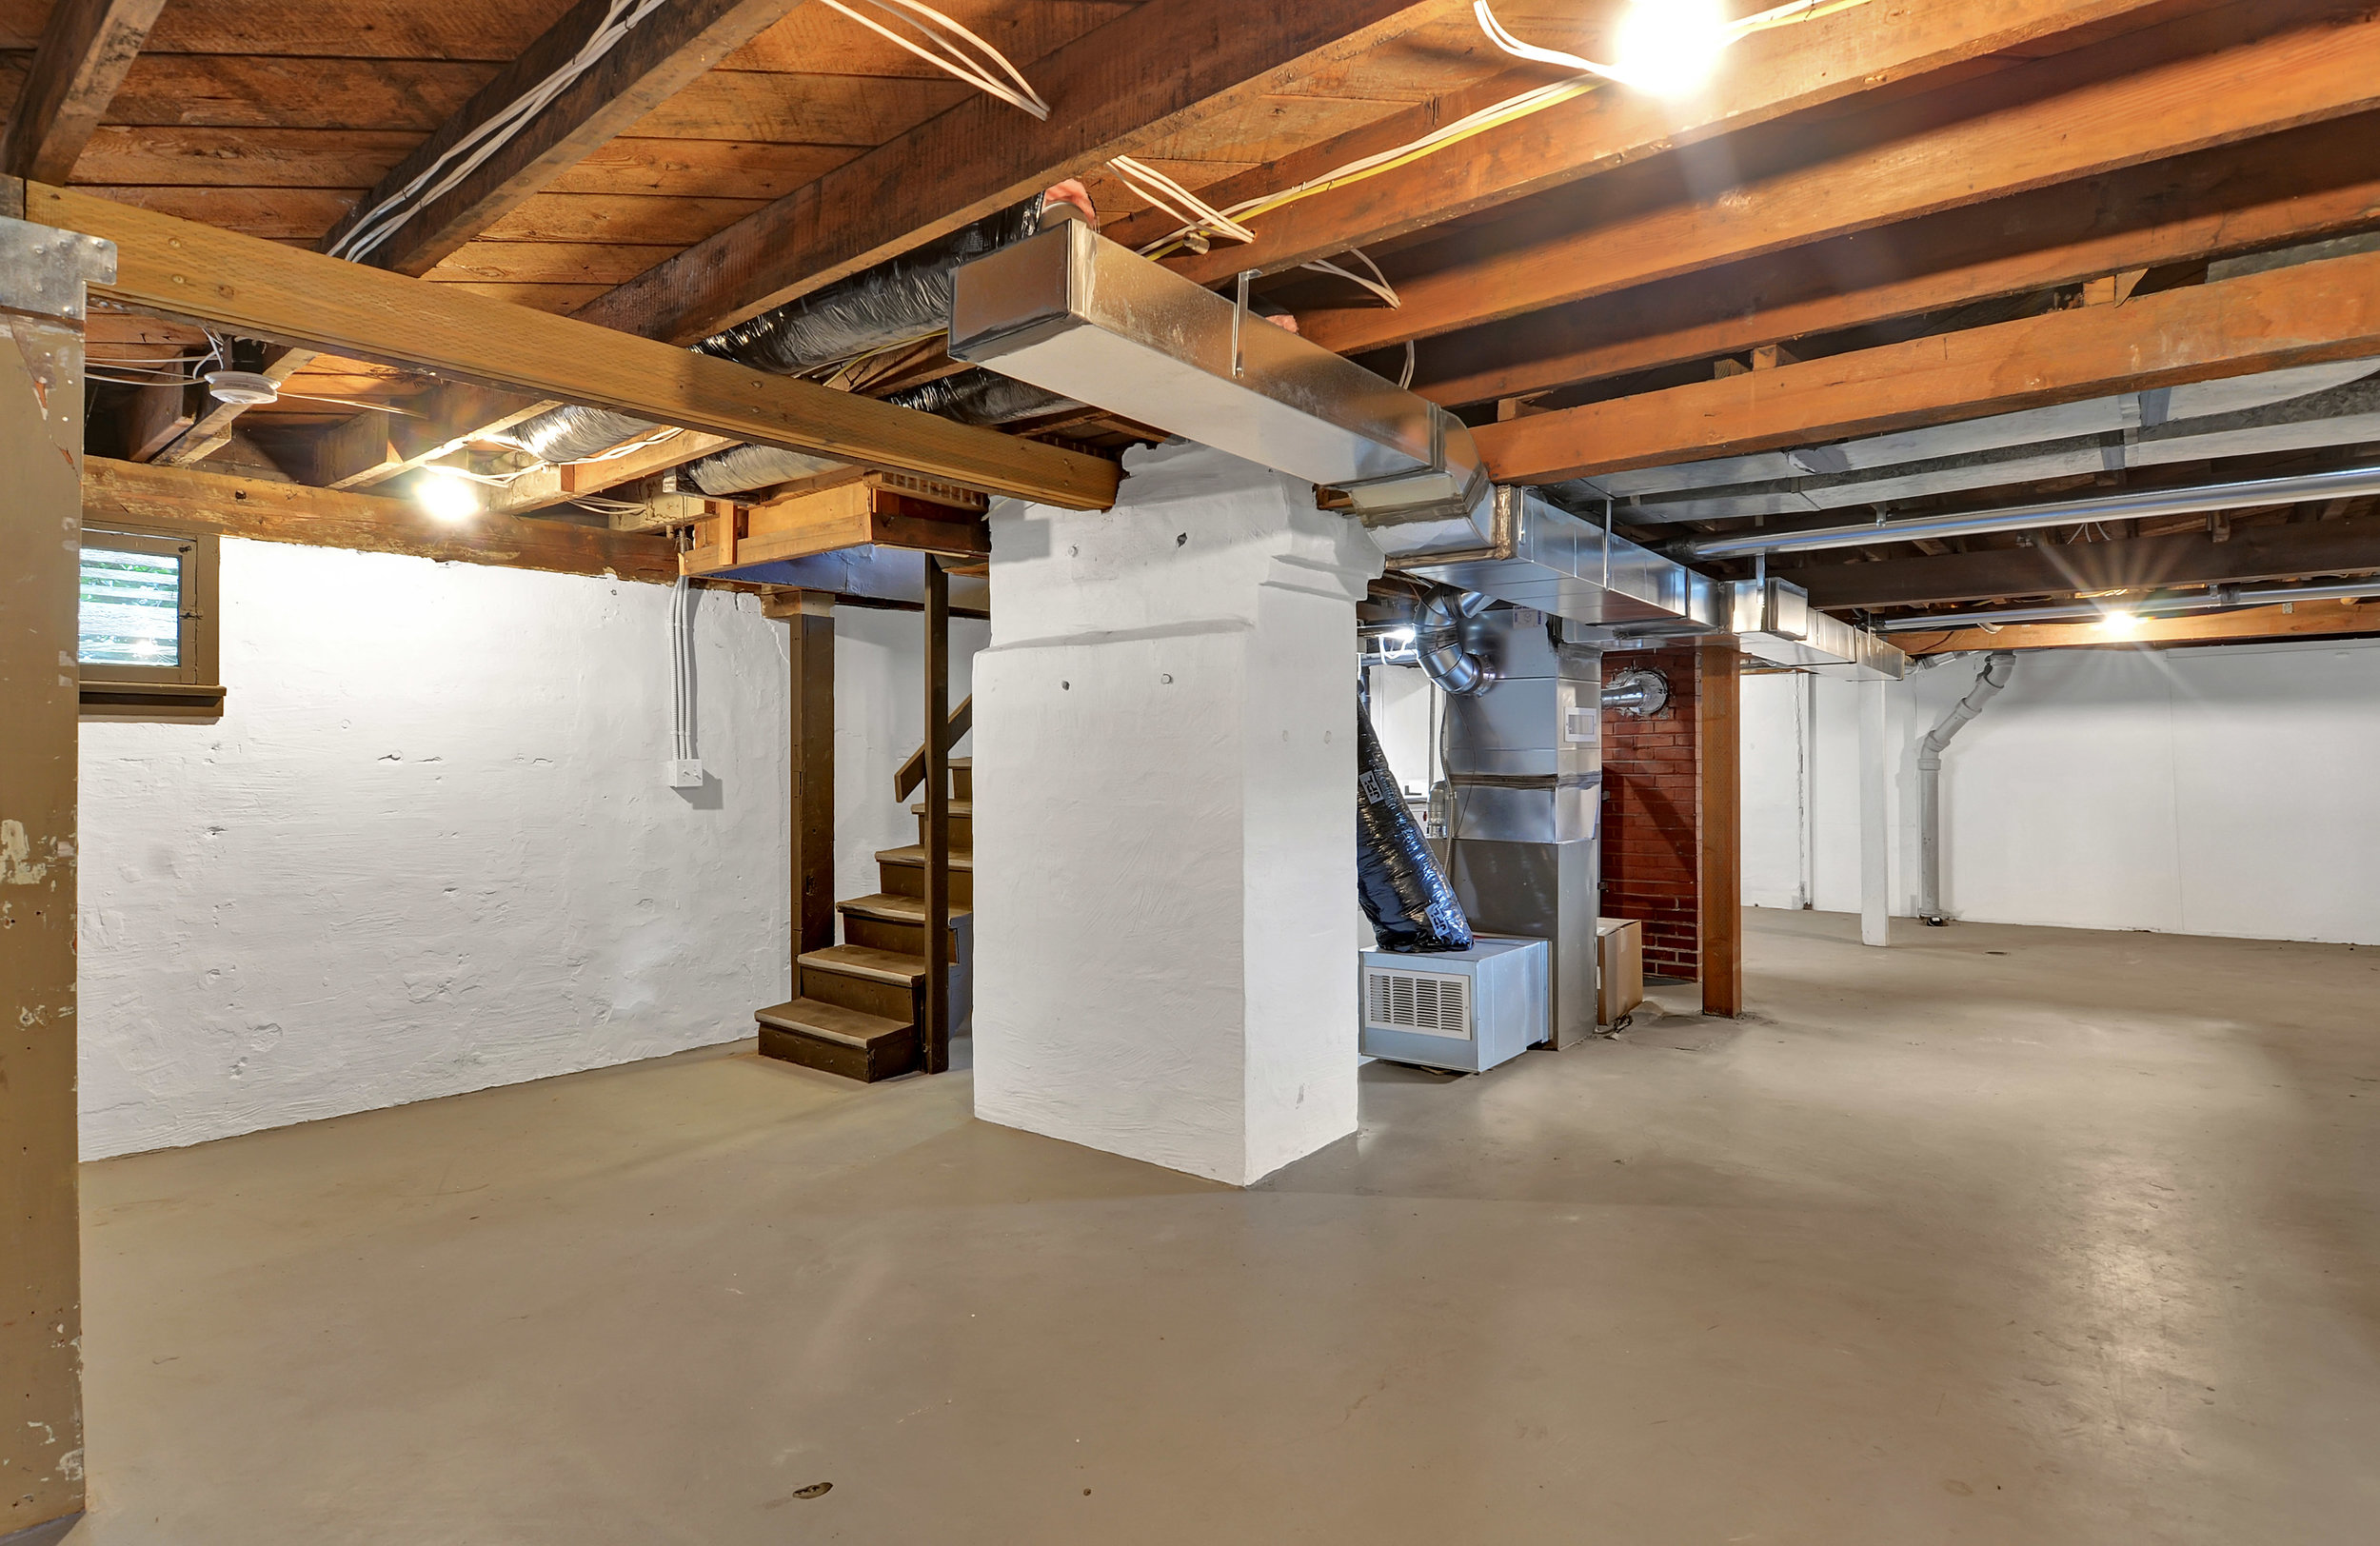 The basement is spacious and clean. This is 924 square feet of unfinished space with a carriage door that opens to the fenced back yard. So think about how you'll use it! There's opportunity for organized storage, workshop space, or even for finishing for additional living space down here.